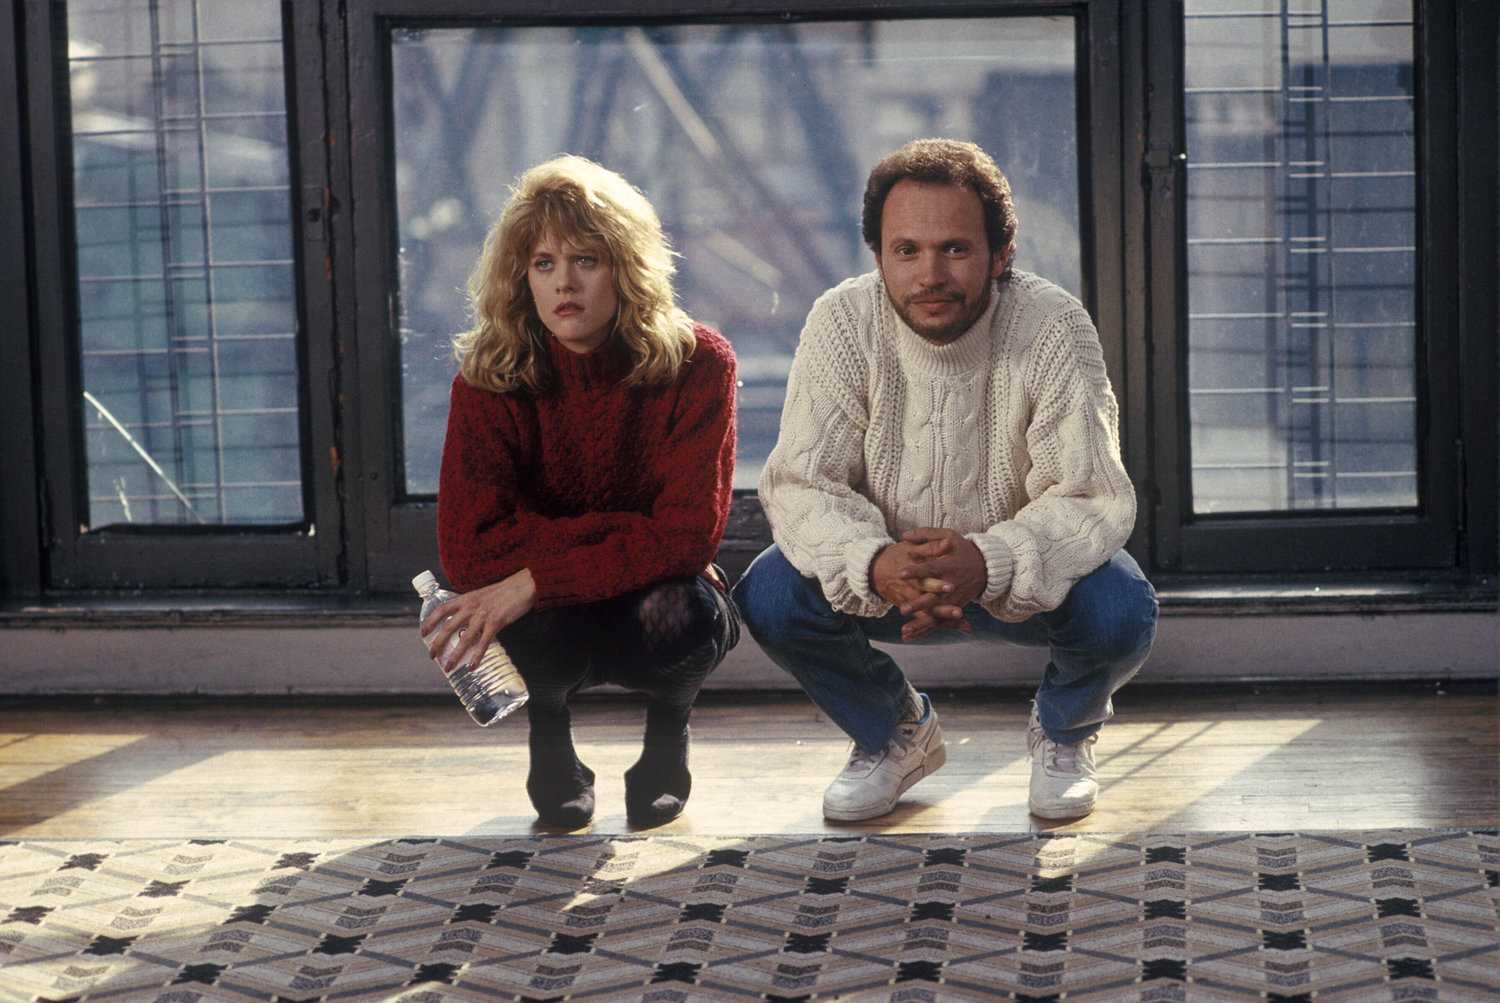 """When Harry Met Sally"" will be shown at Long Beach Cinema 4 on Feb. 14 at 6 p.m. Tickets are $20 and available at eventbrite.com or at Frippery, at 140 E. Park Ave."